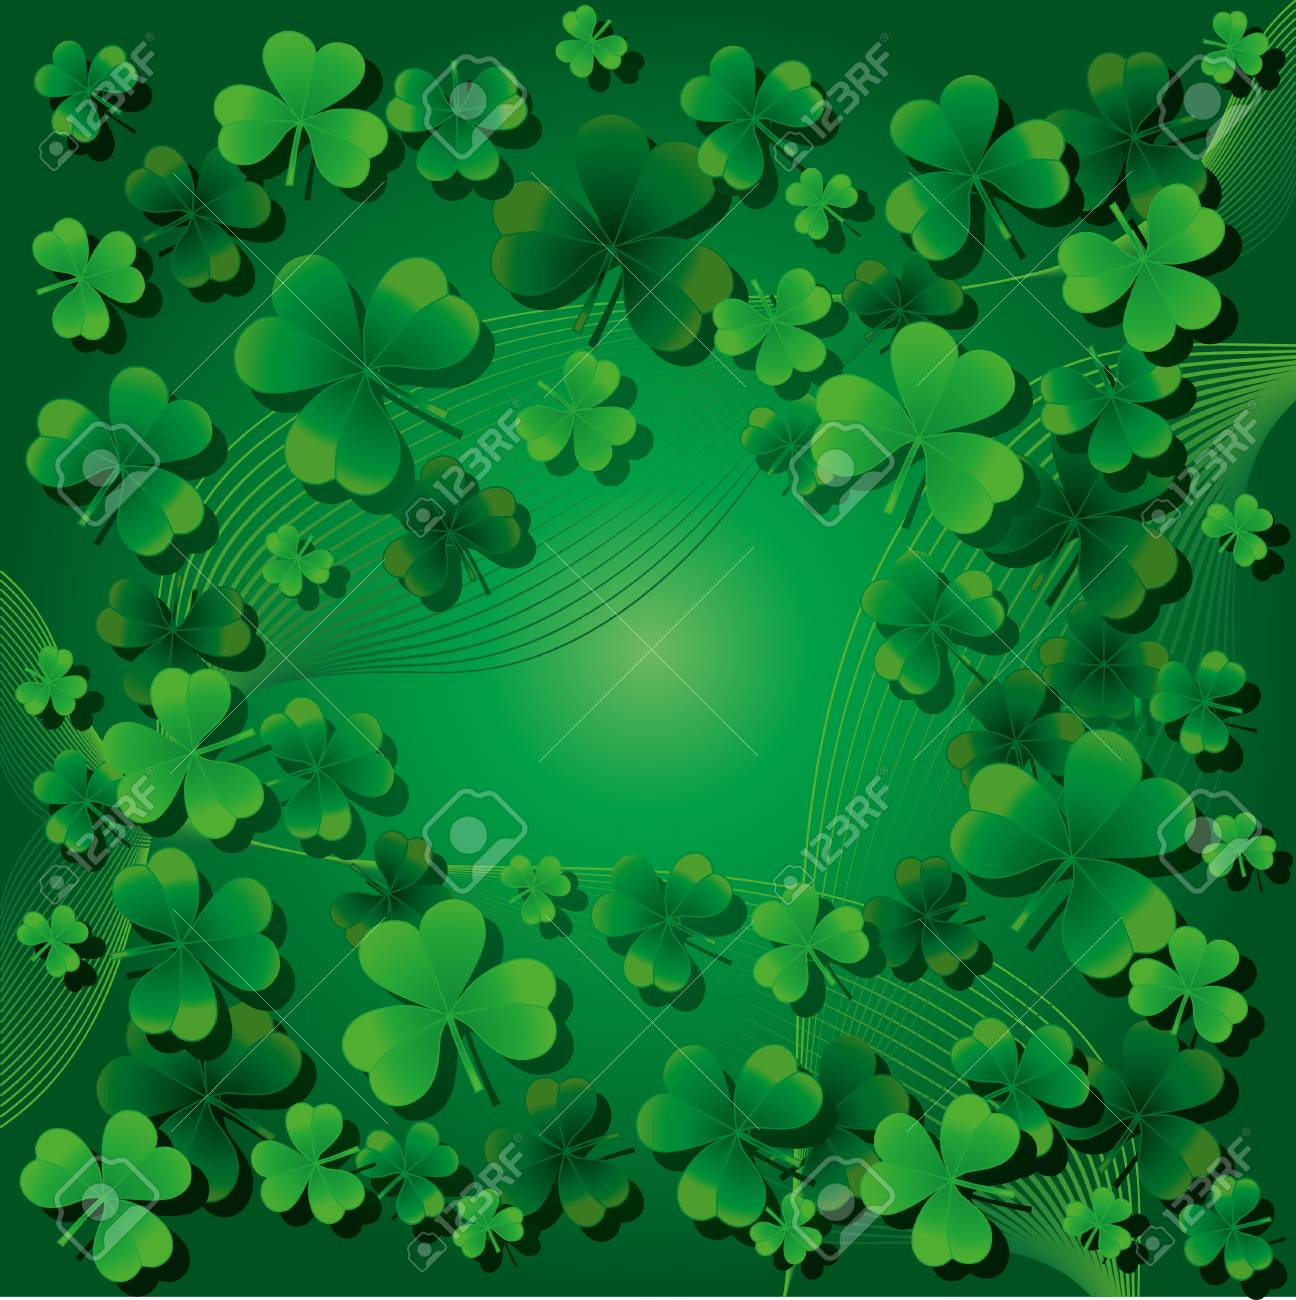 Background with clovers for St.Patrick`s day, Find one Happy Four-leafed clover/ Stock Vector - 9068317